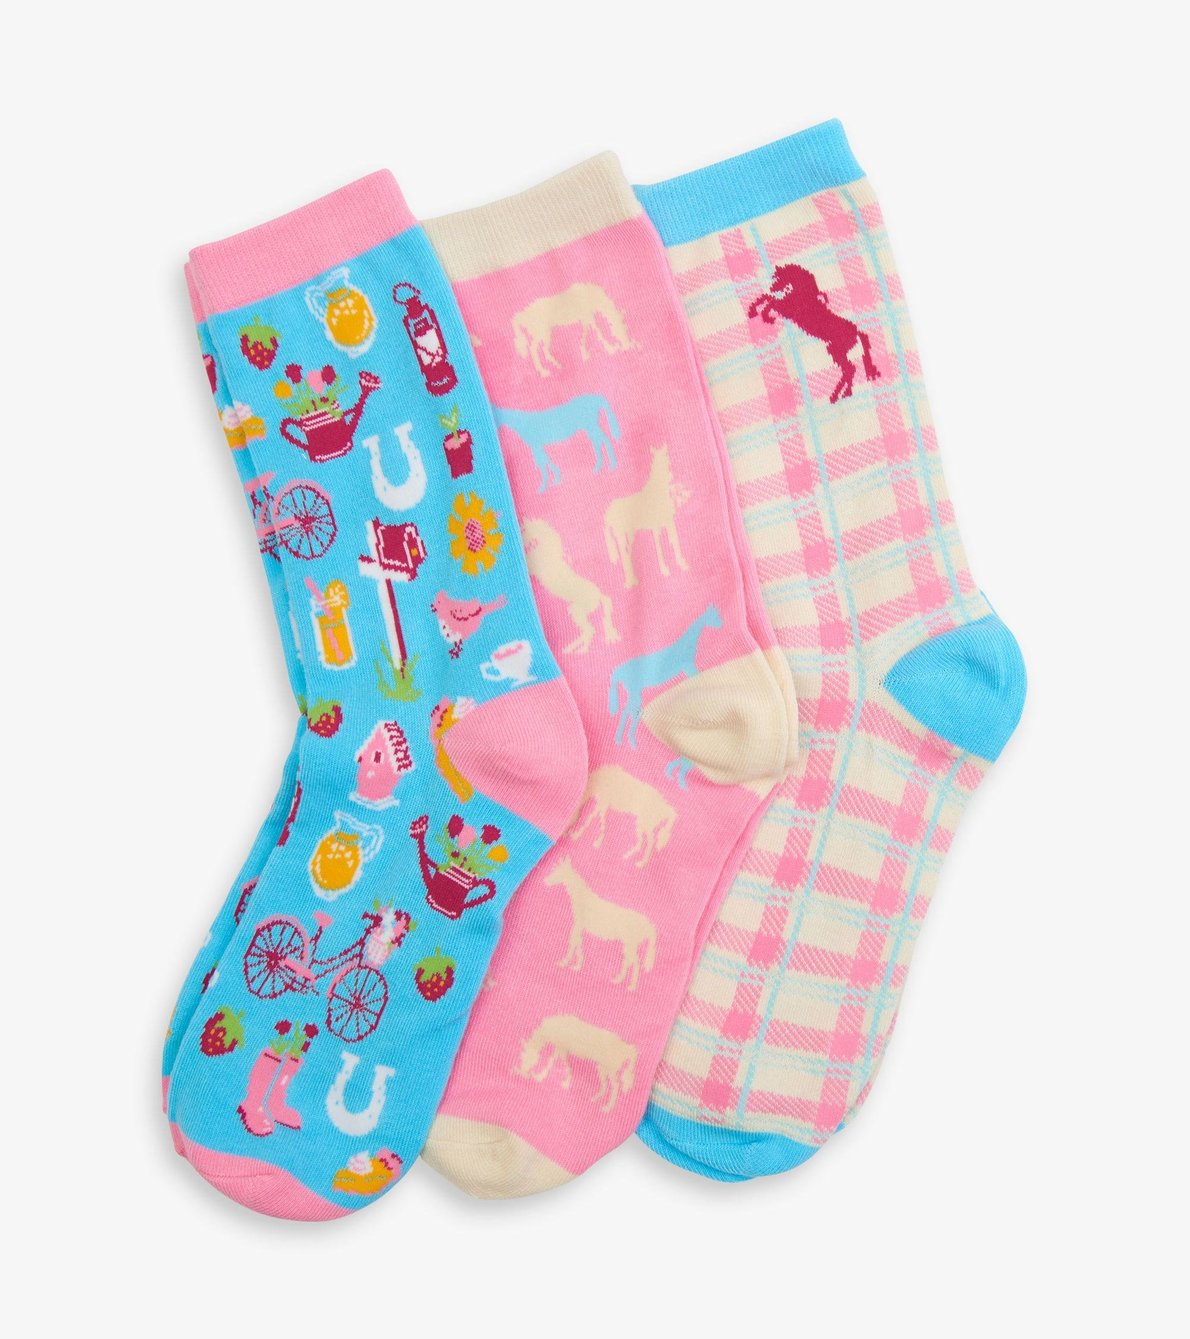 View larger image of Country Living Women's Crew Socks